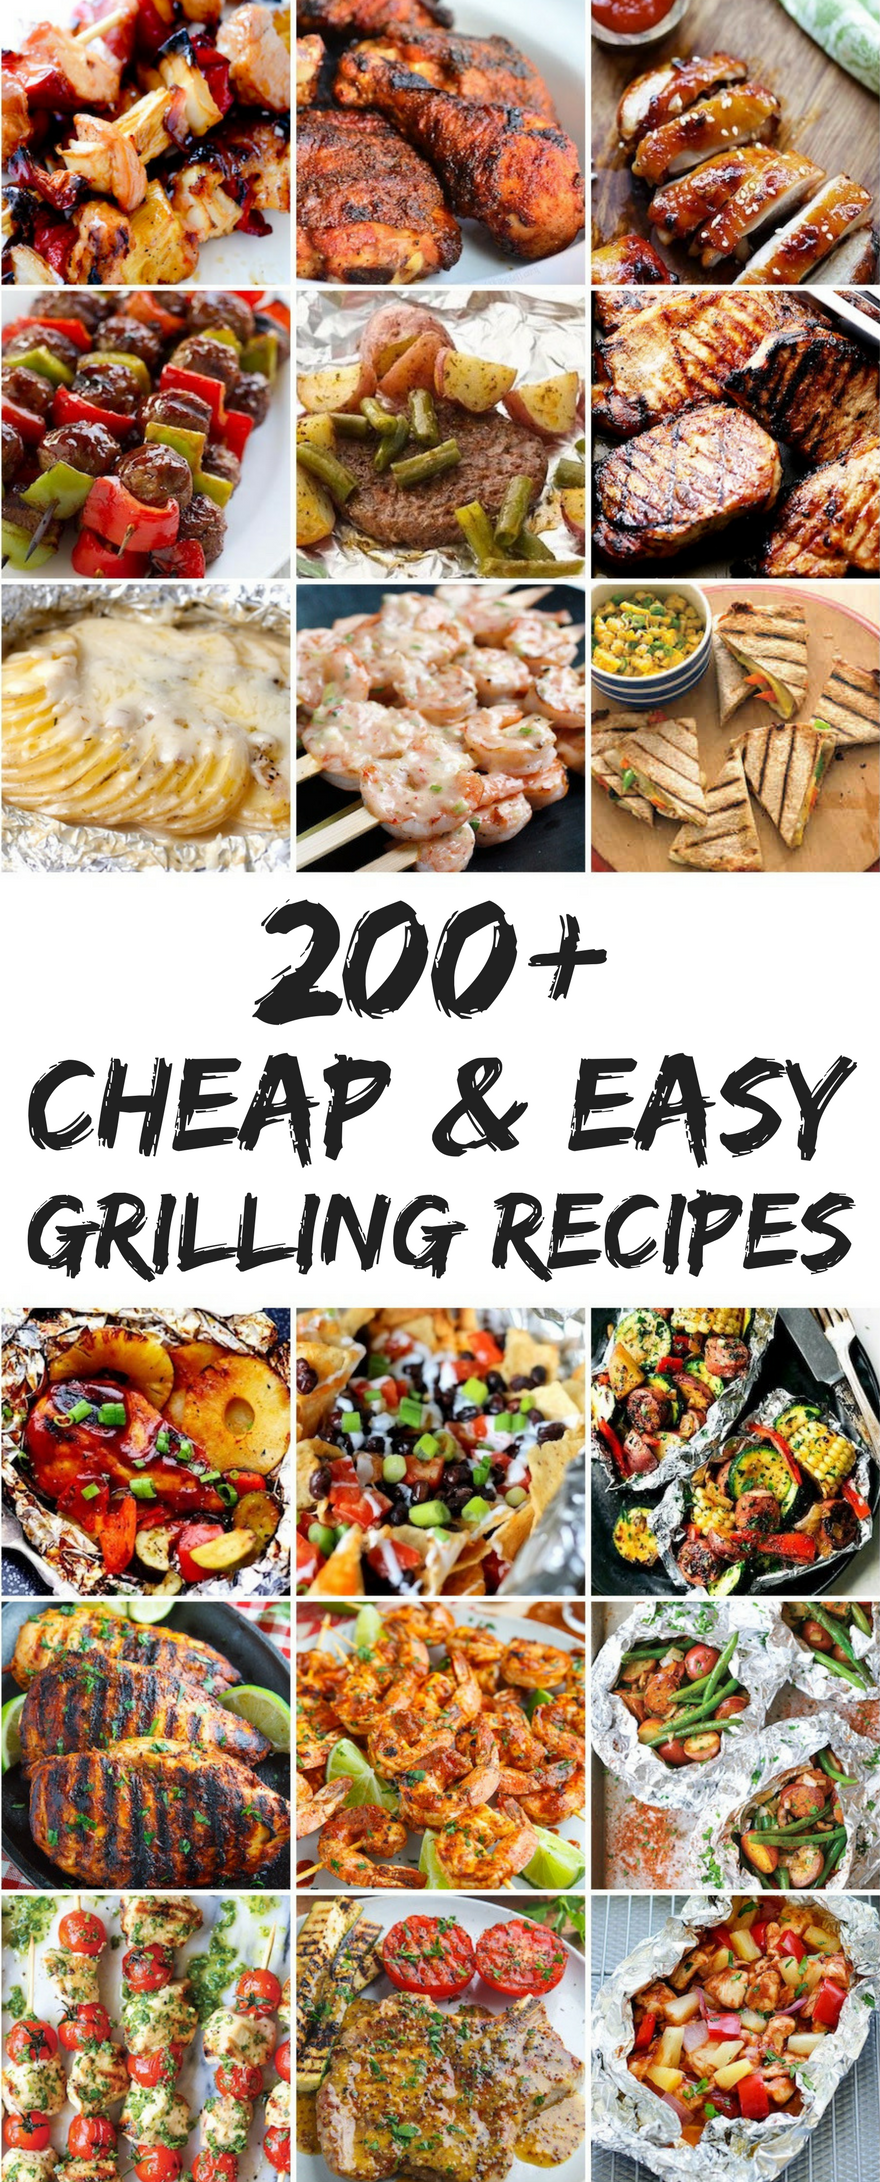 200 cheap and easy grilling recipes prudent penny pincher grilling recipes forumfinder Choice Image